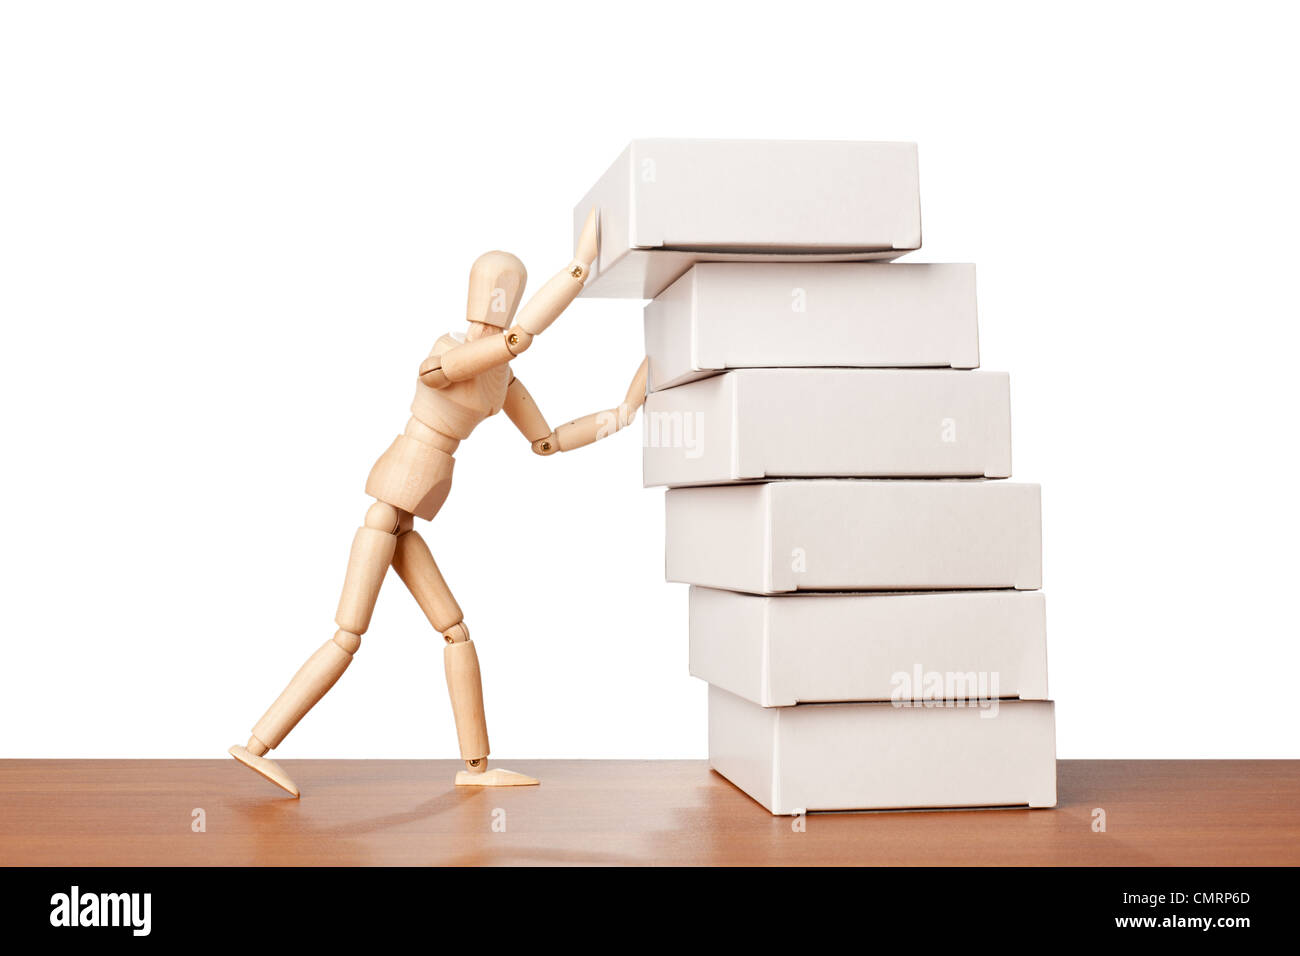 Figurine stacking a stack of white boxes - Stock Image